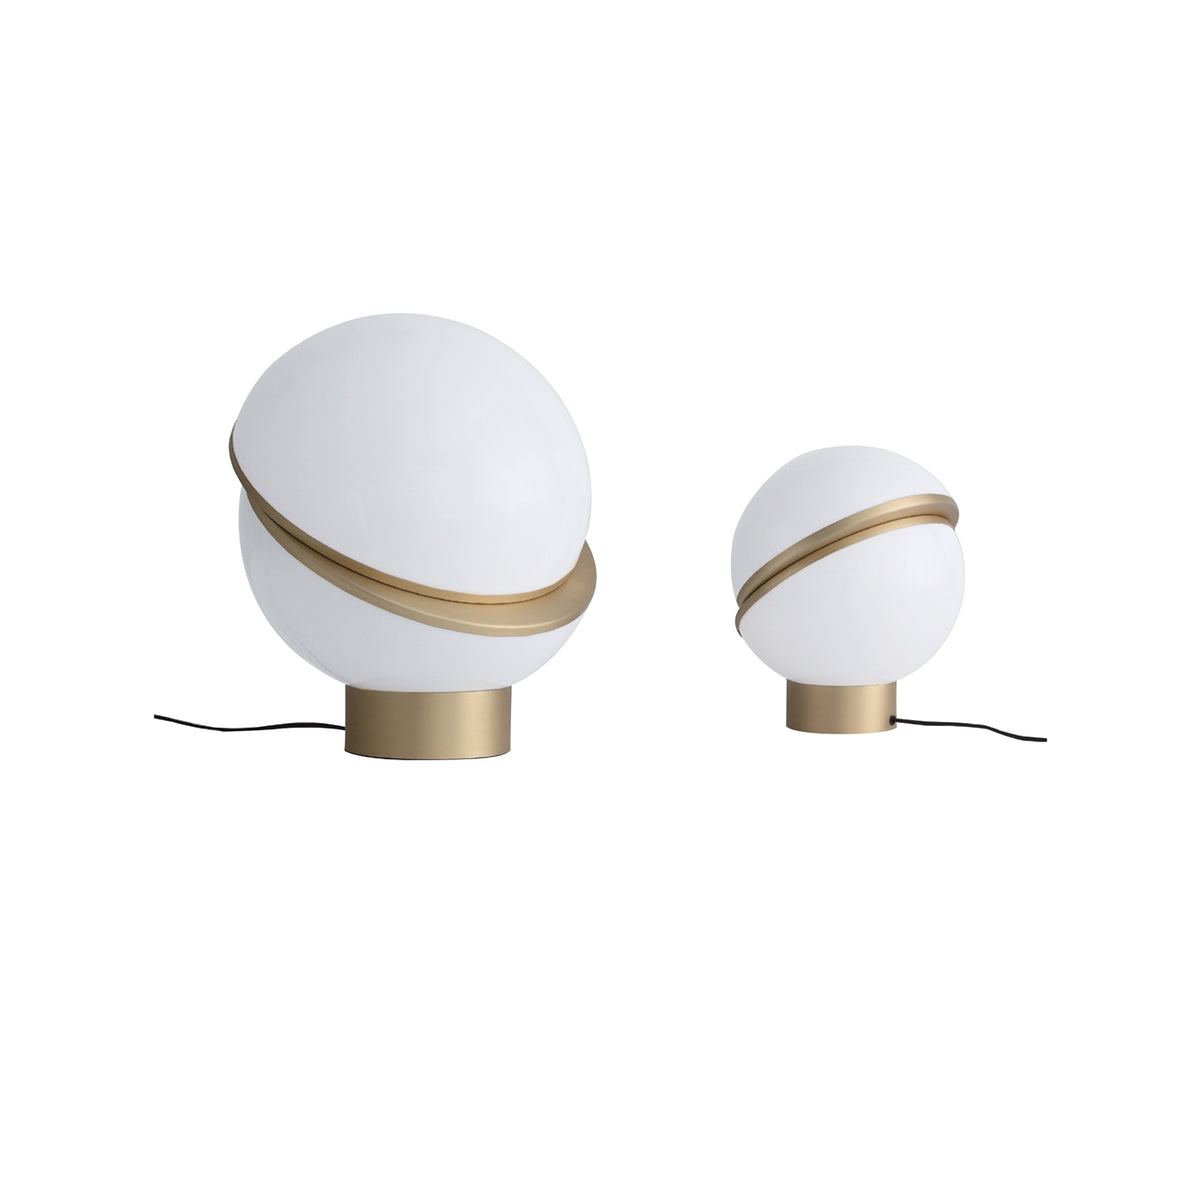 Halve Globe Table Lamp - objects of interest